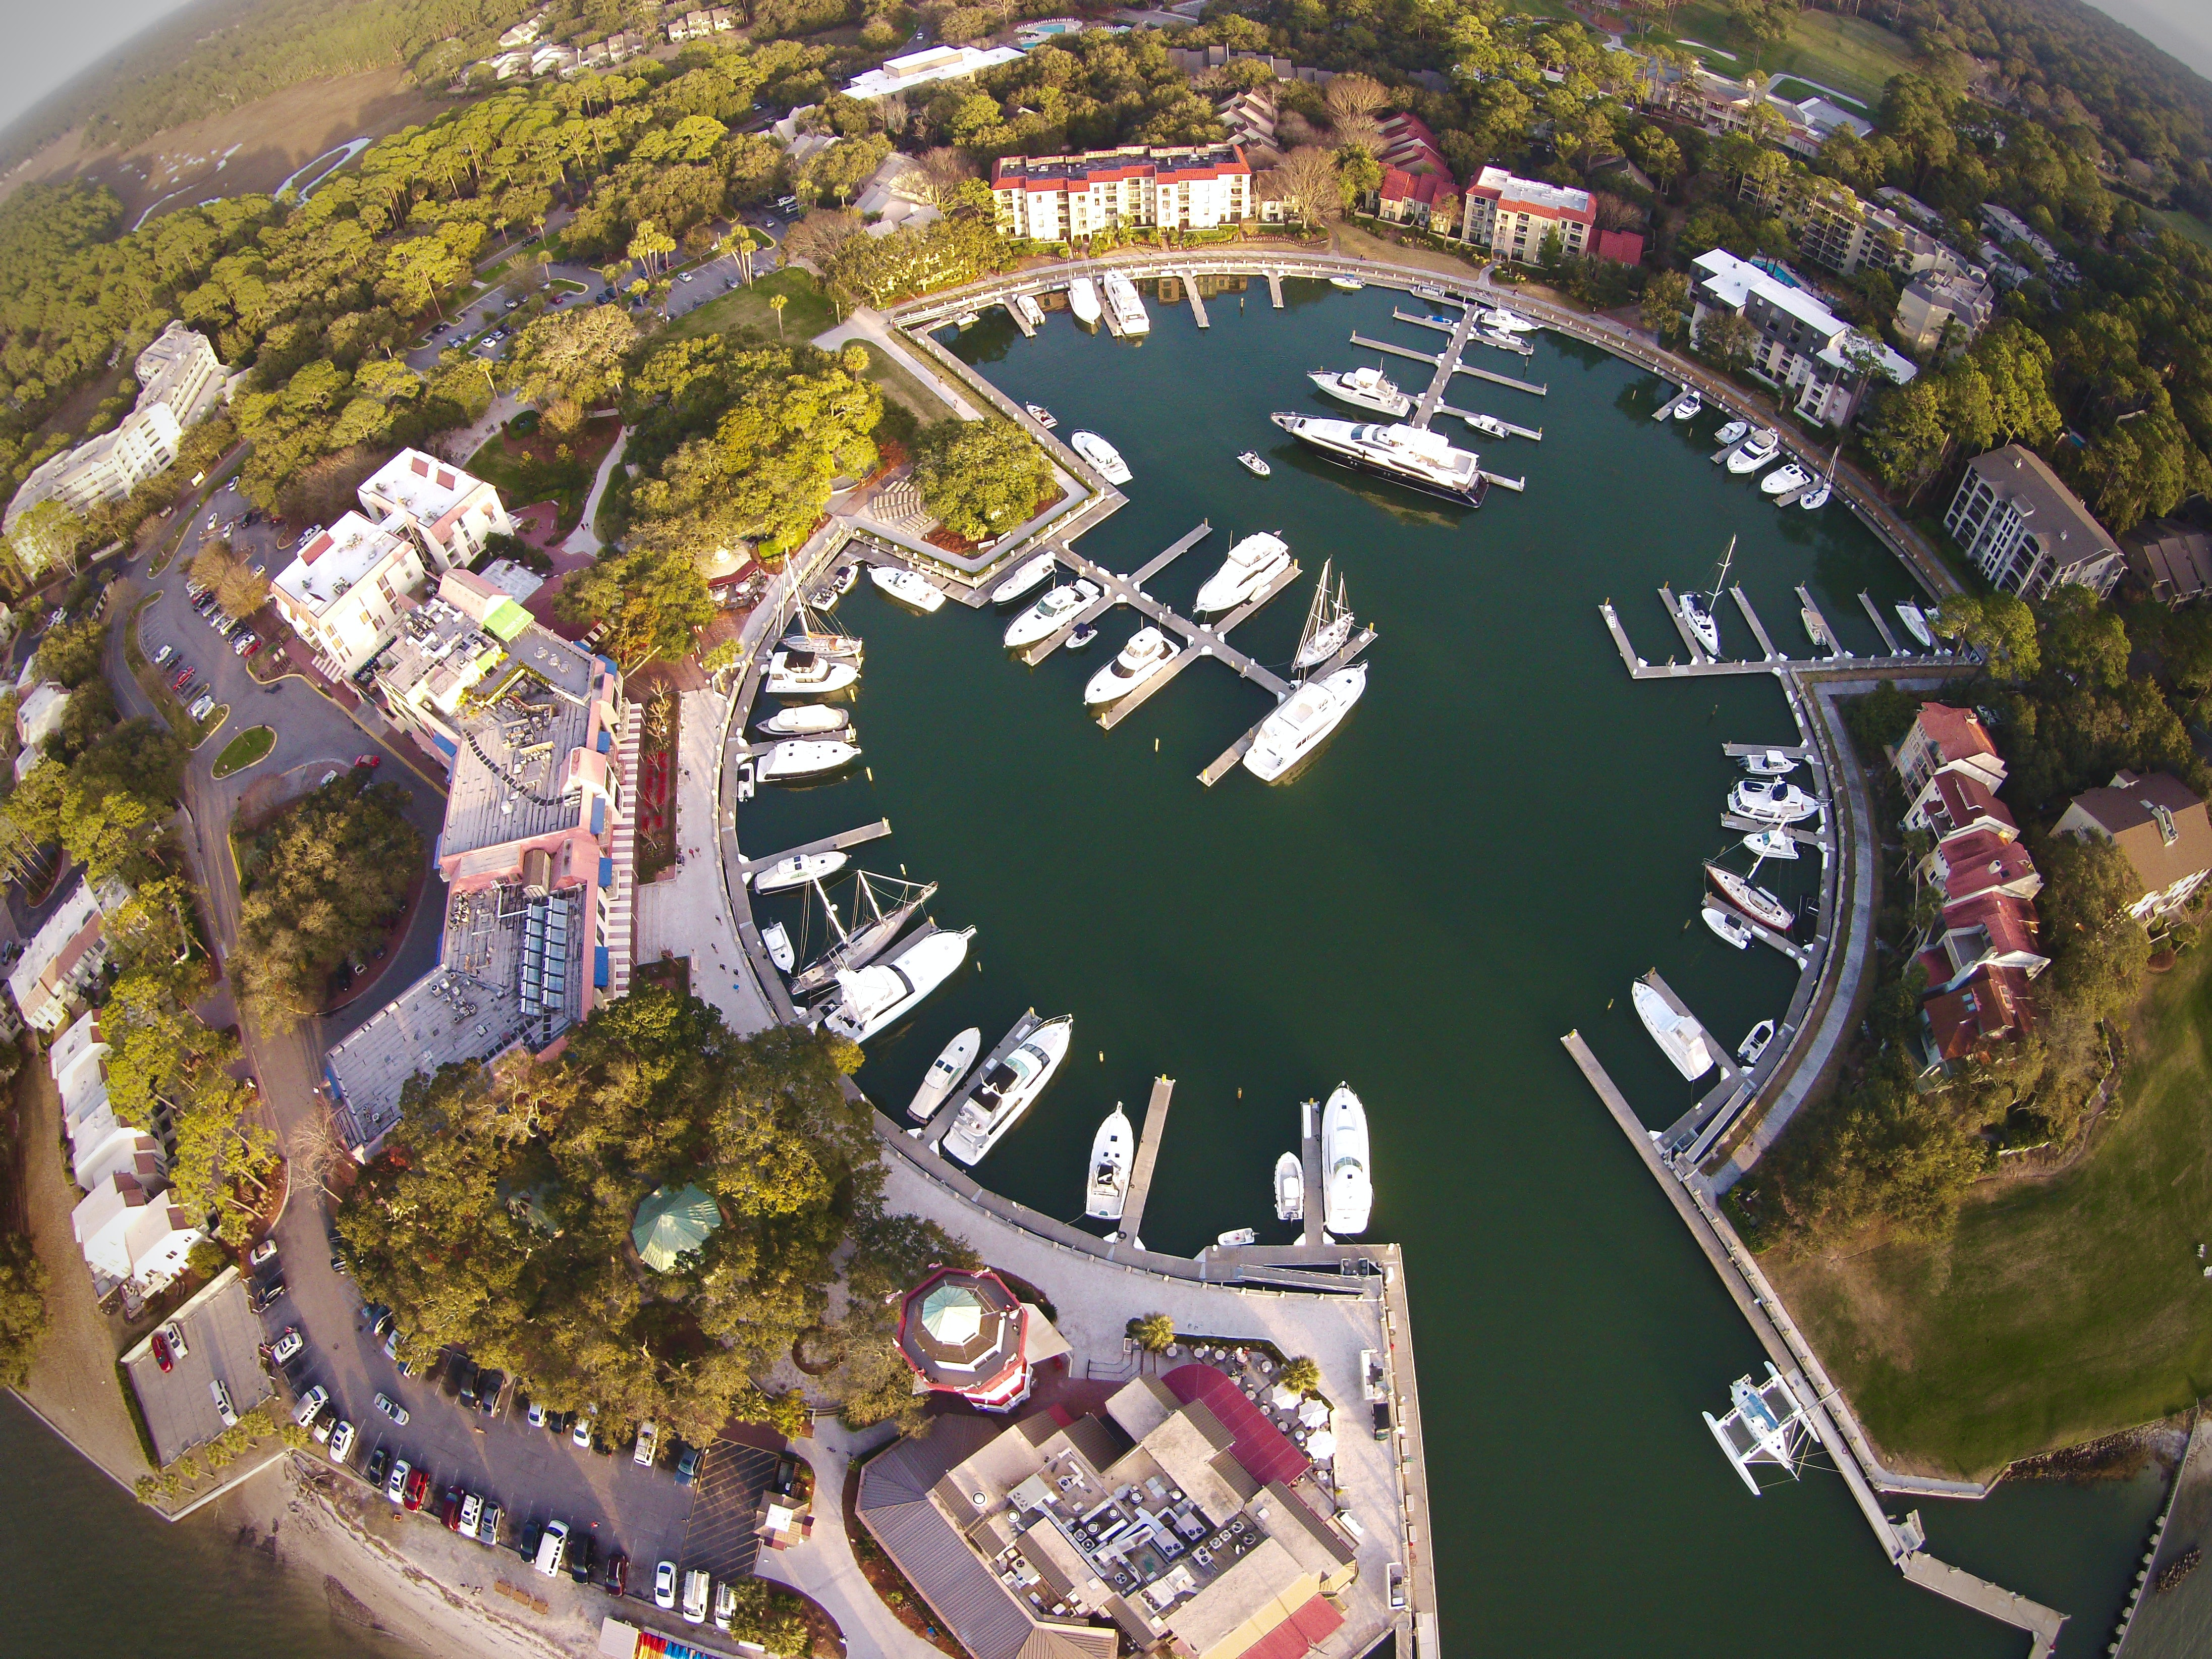 An overhead shot of the marina, yachts and the resort at Harbour Town Golf Links.